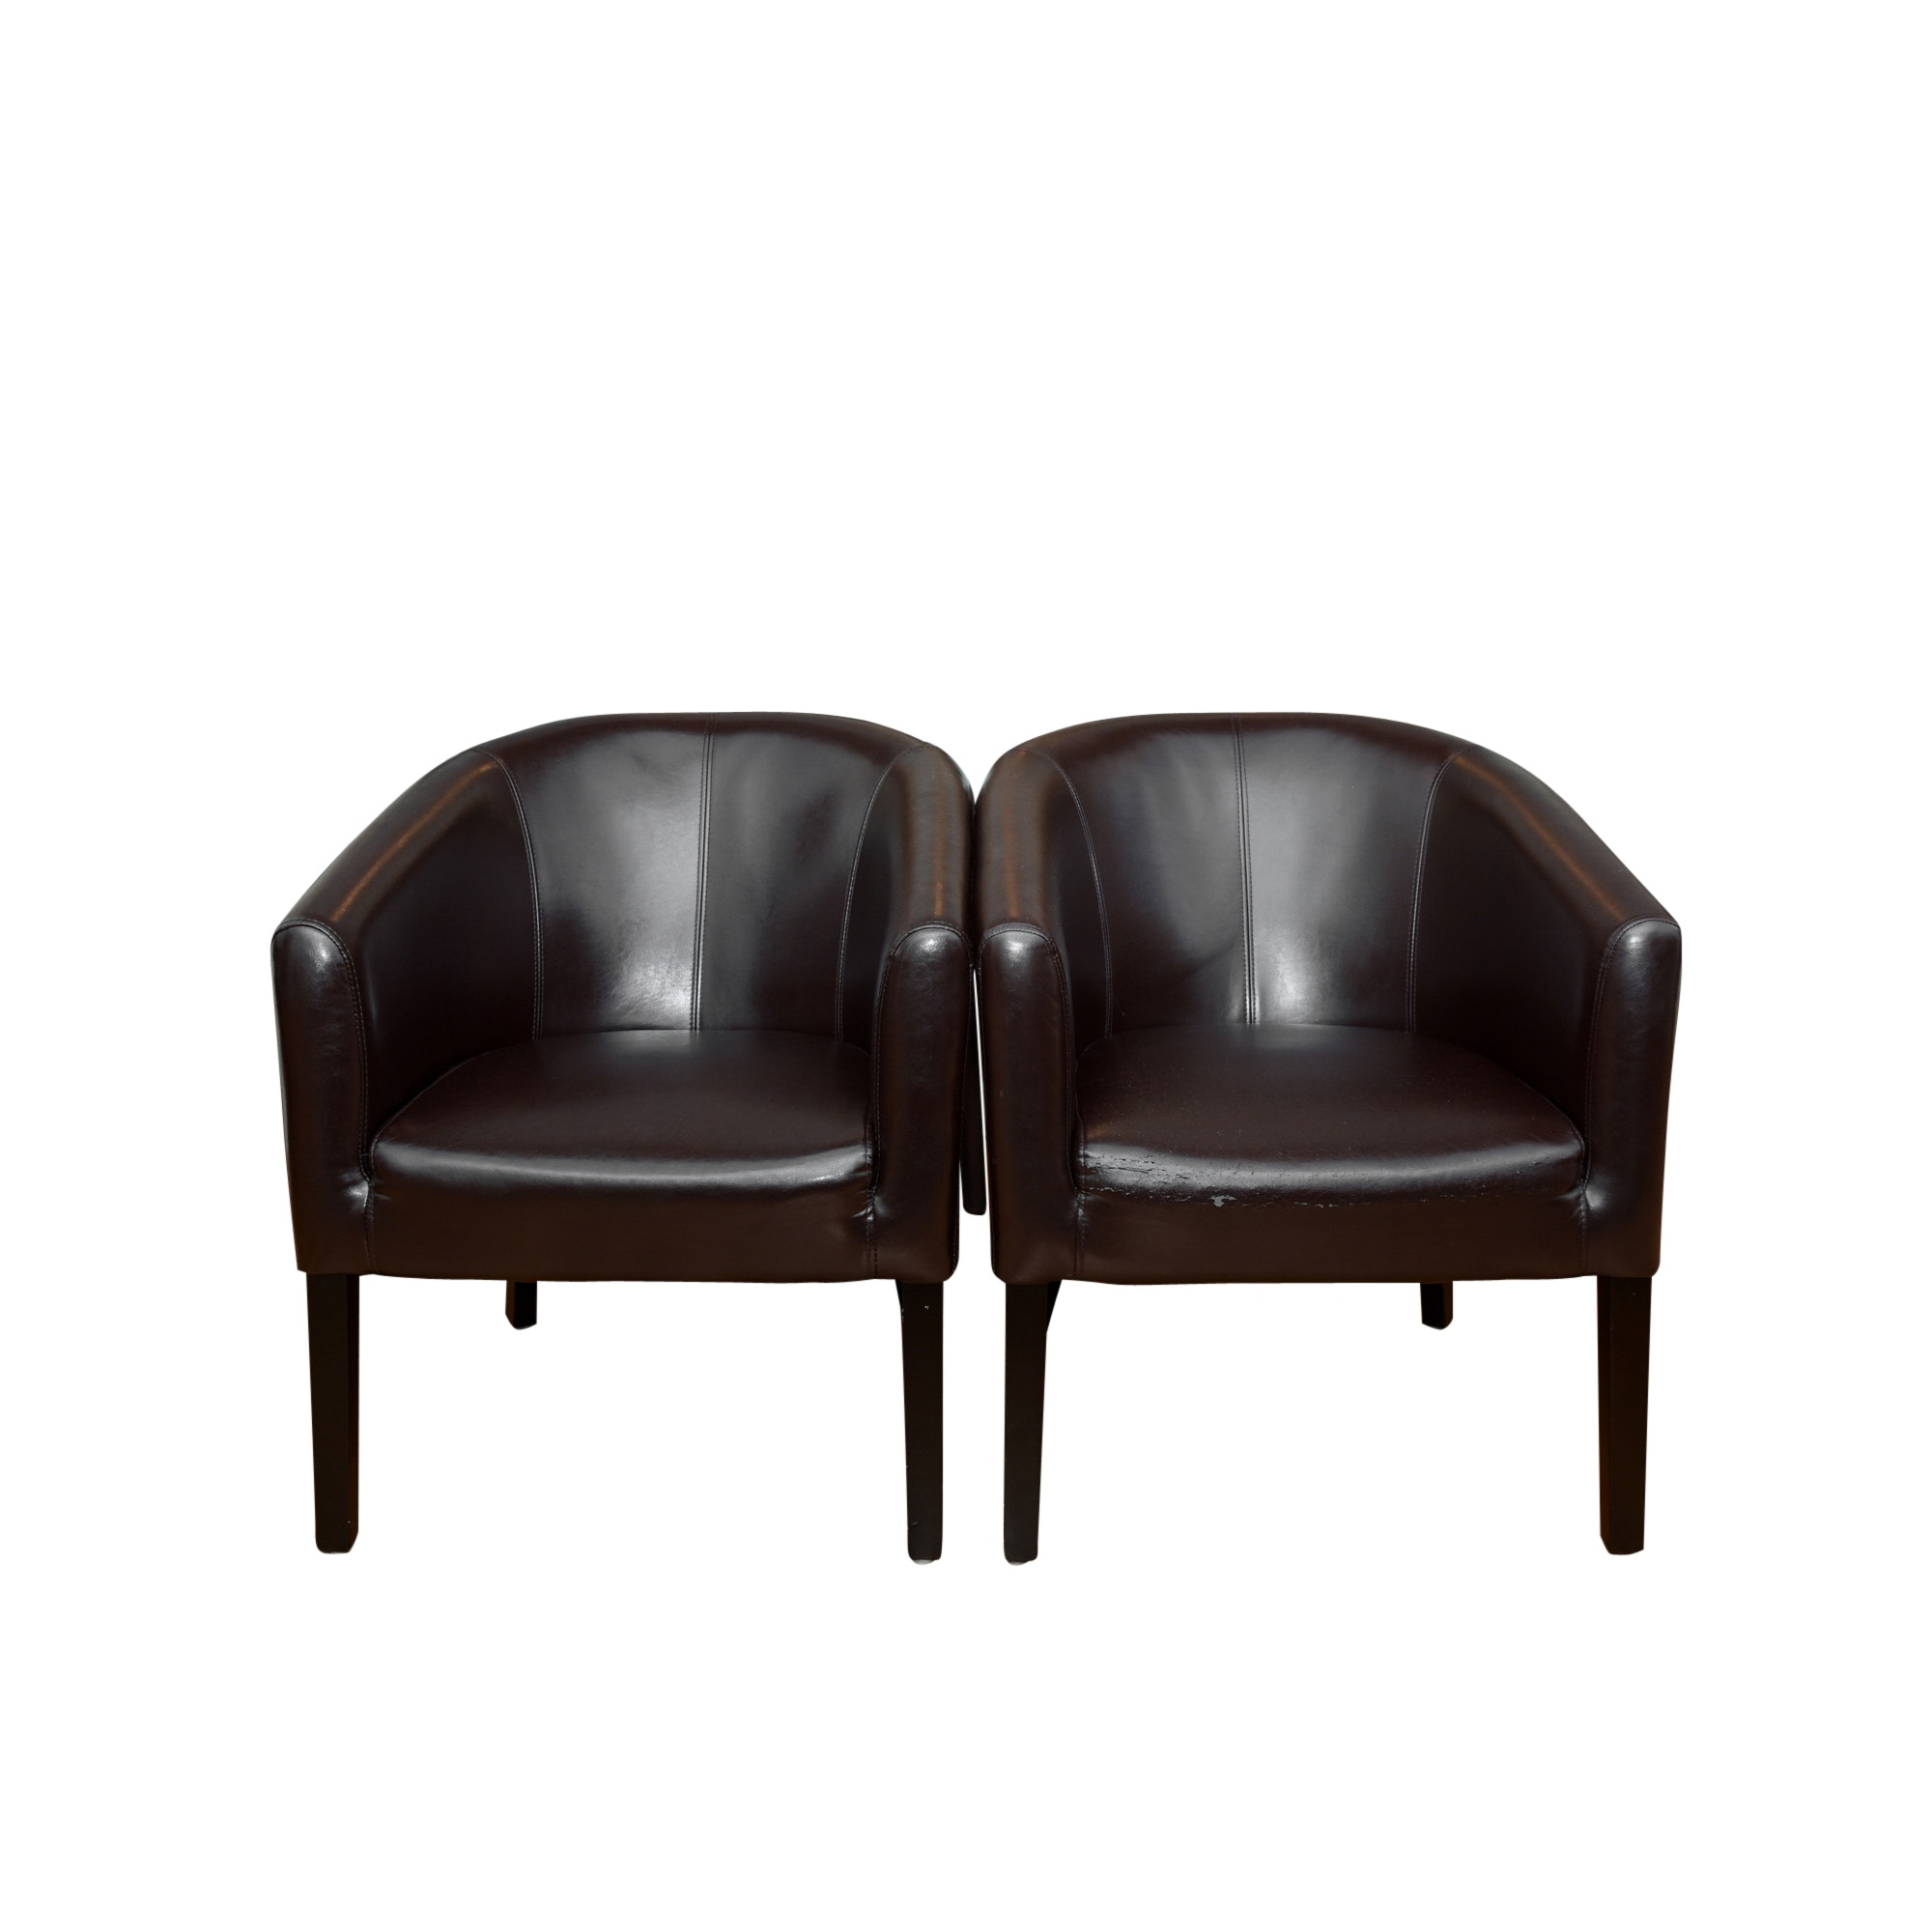 Pair of Bonded Leather Tub Chairs by Home Accents